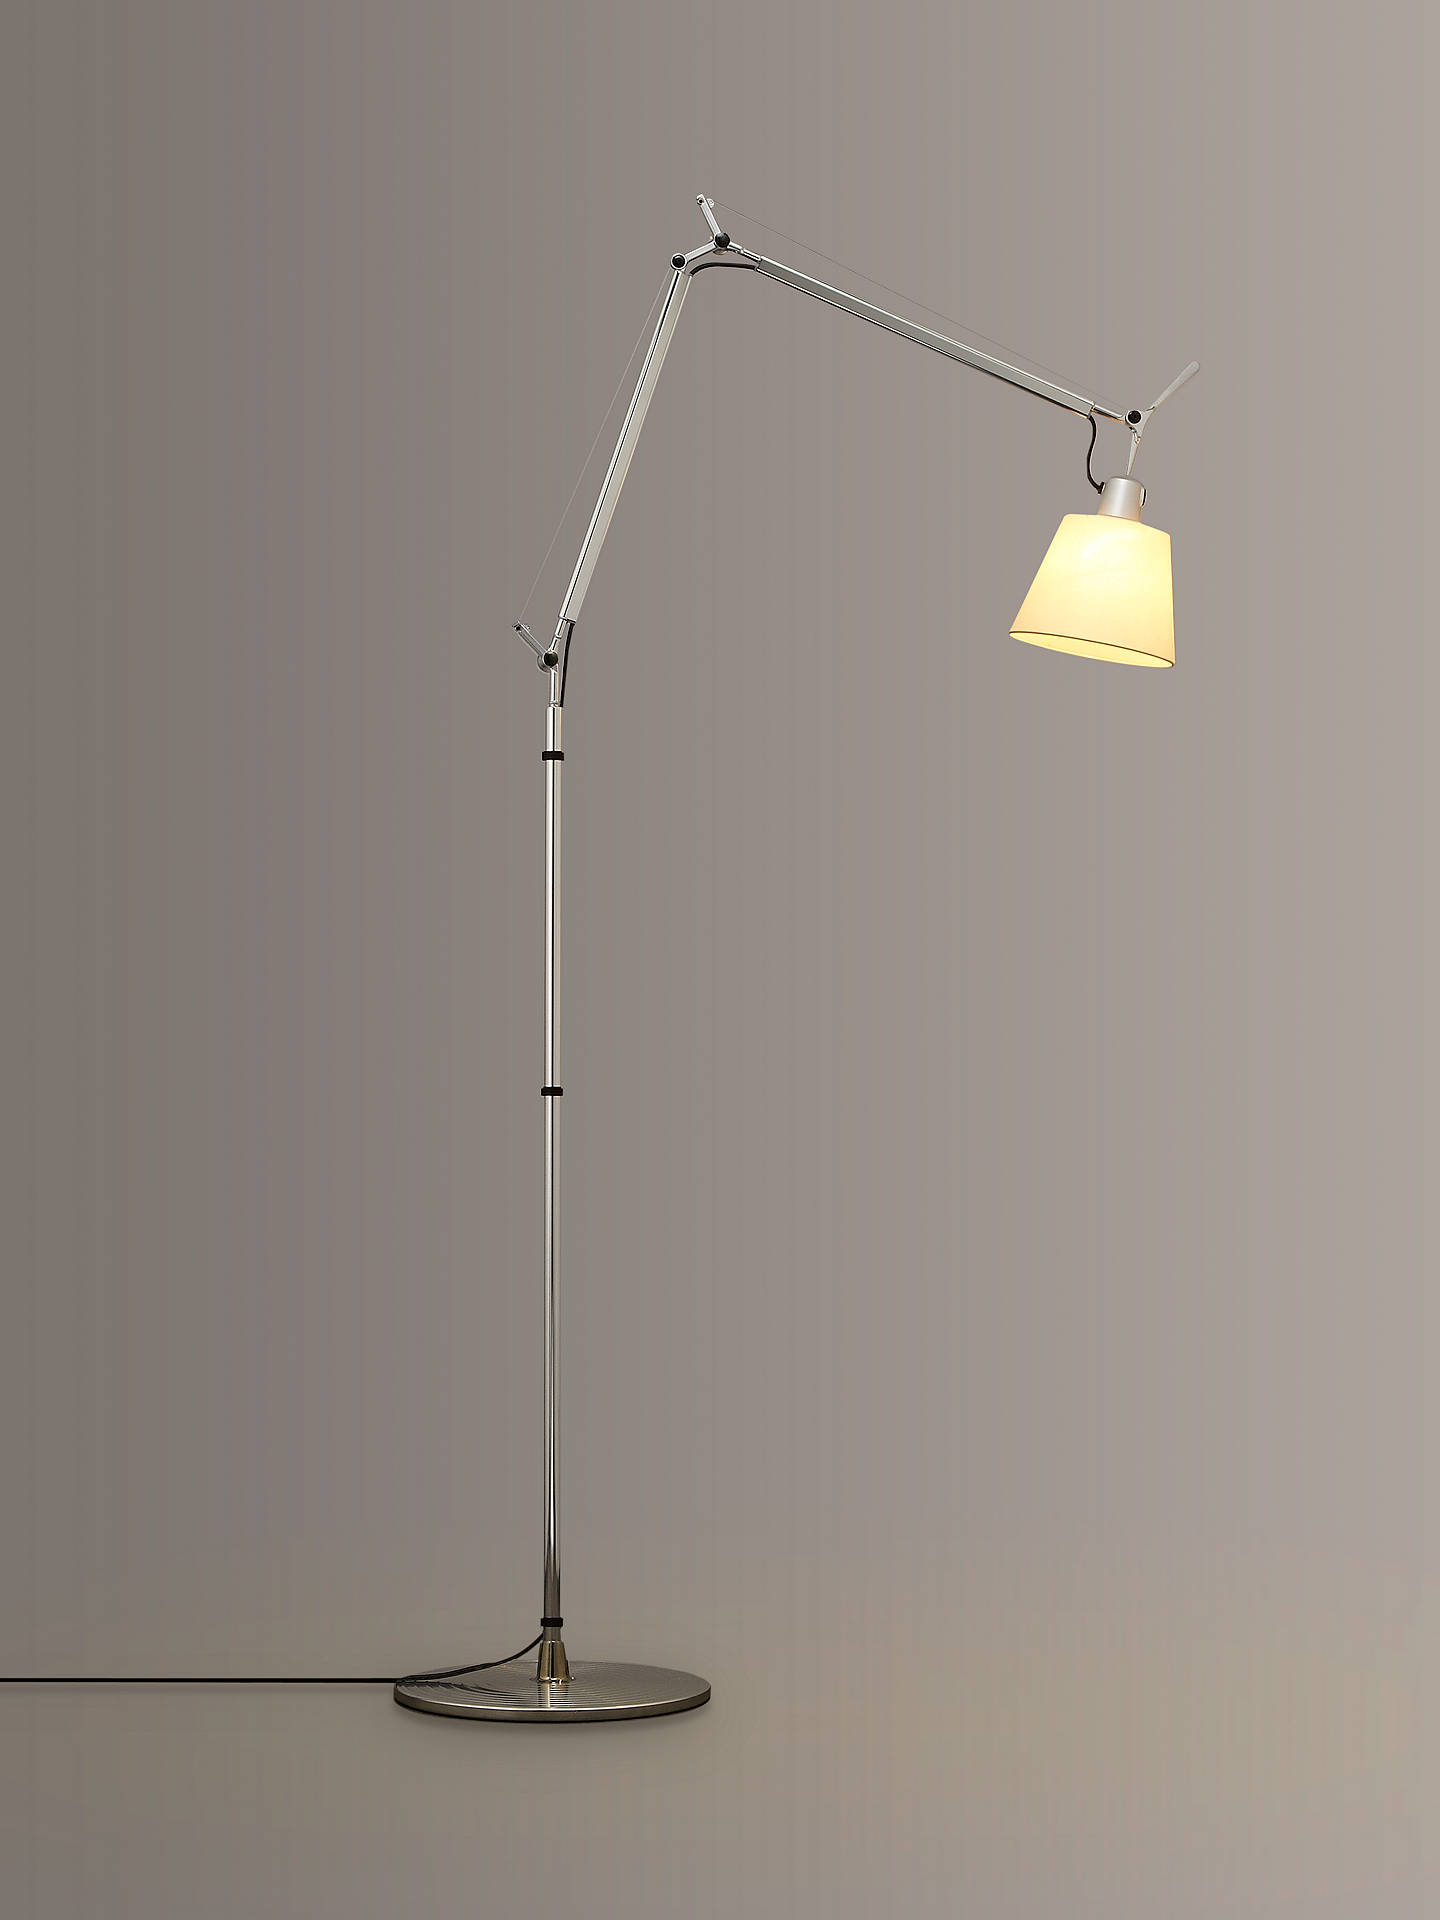 BuyArtemide Tolomeo Parchment Floor Lamp, Small Online at johnlewis.com